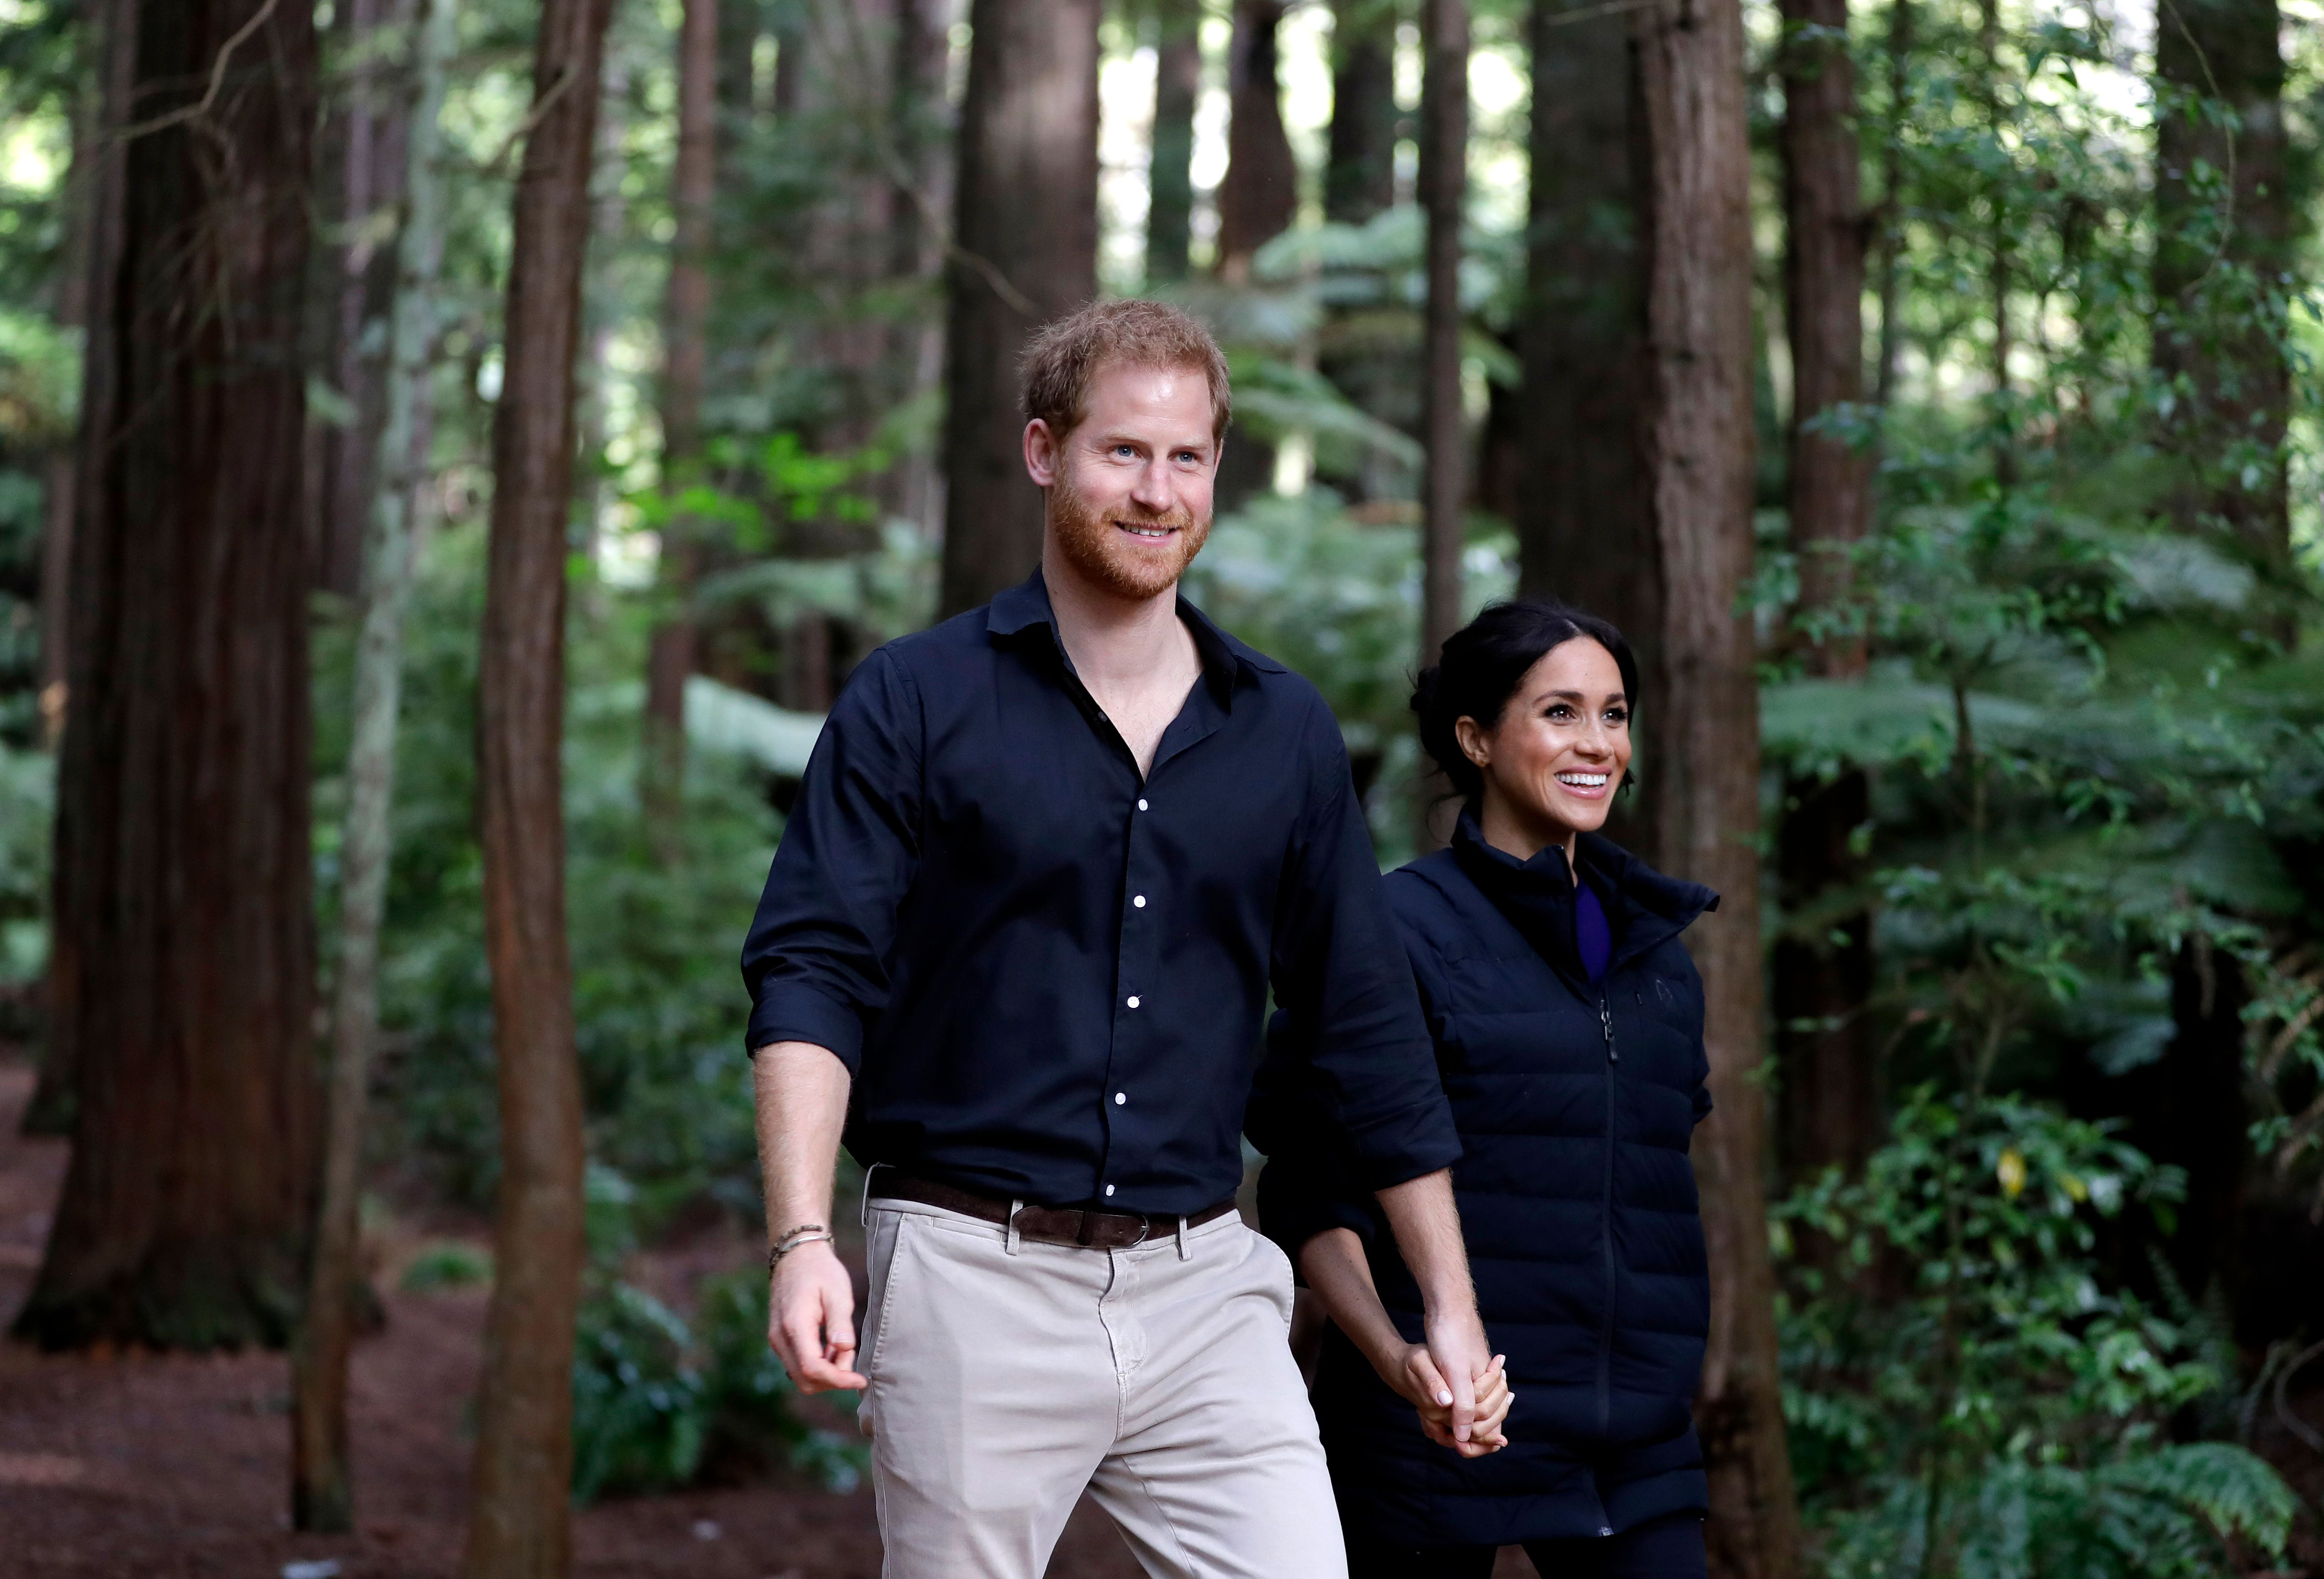 The Duke oand Duchess of Sussex at the Redwoods Tree Walk in October 31, 2018 in Rotorua, New Zealand | Source: Getty Images